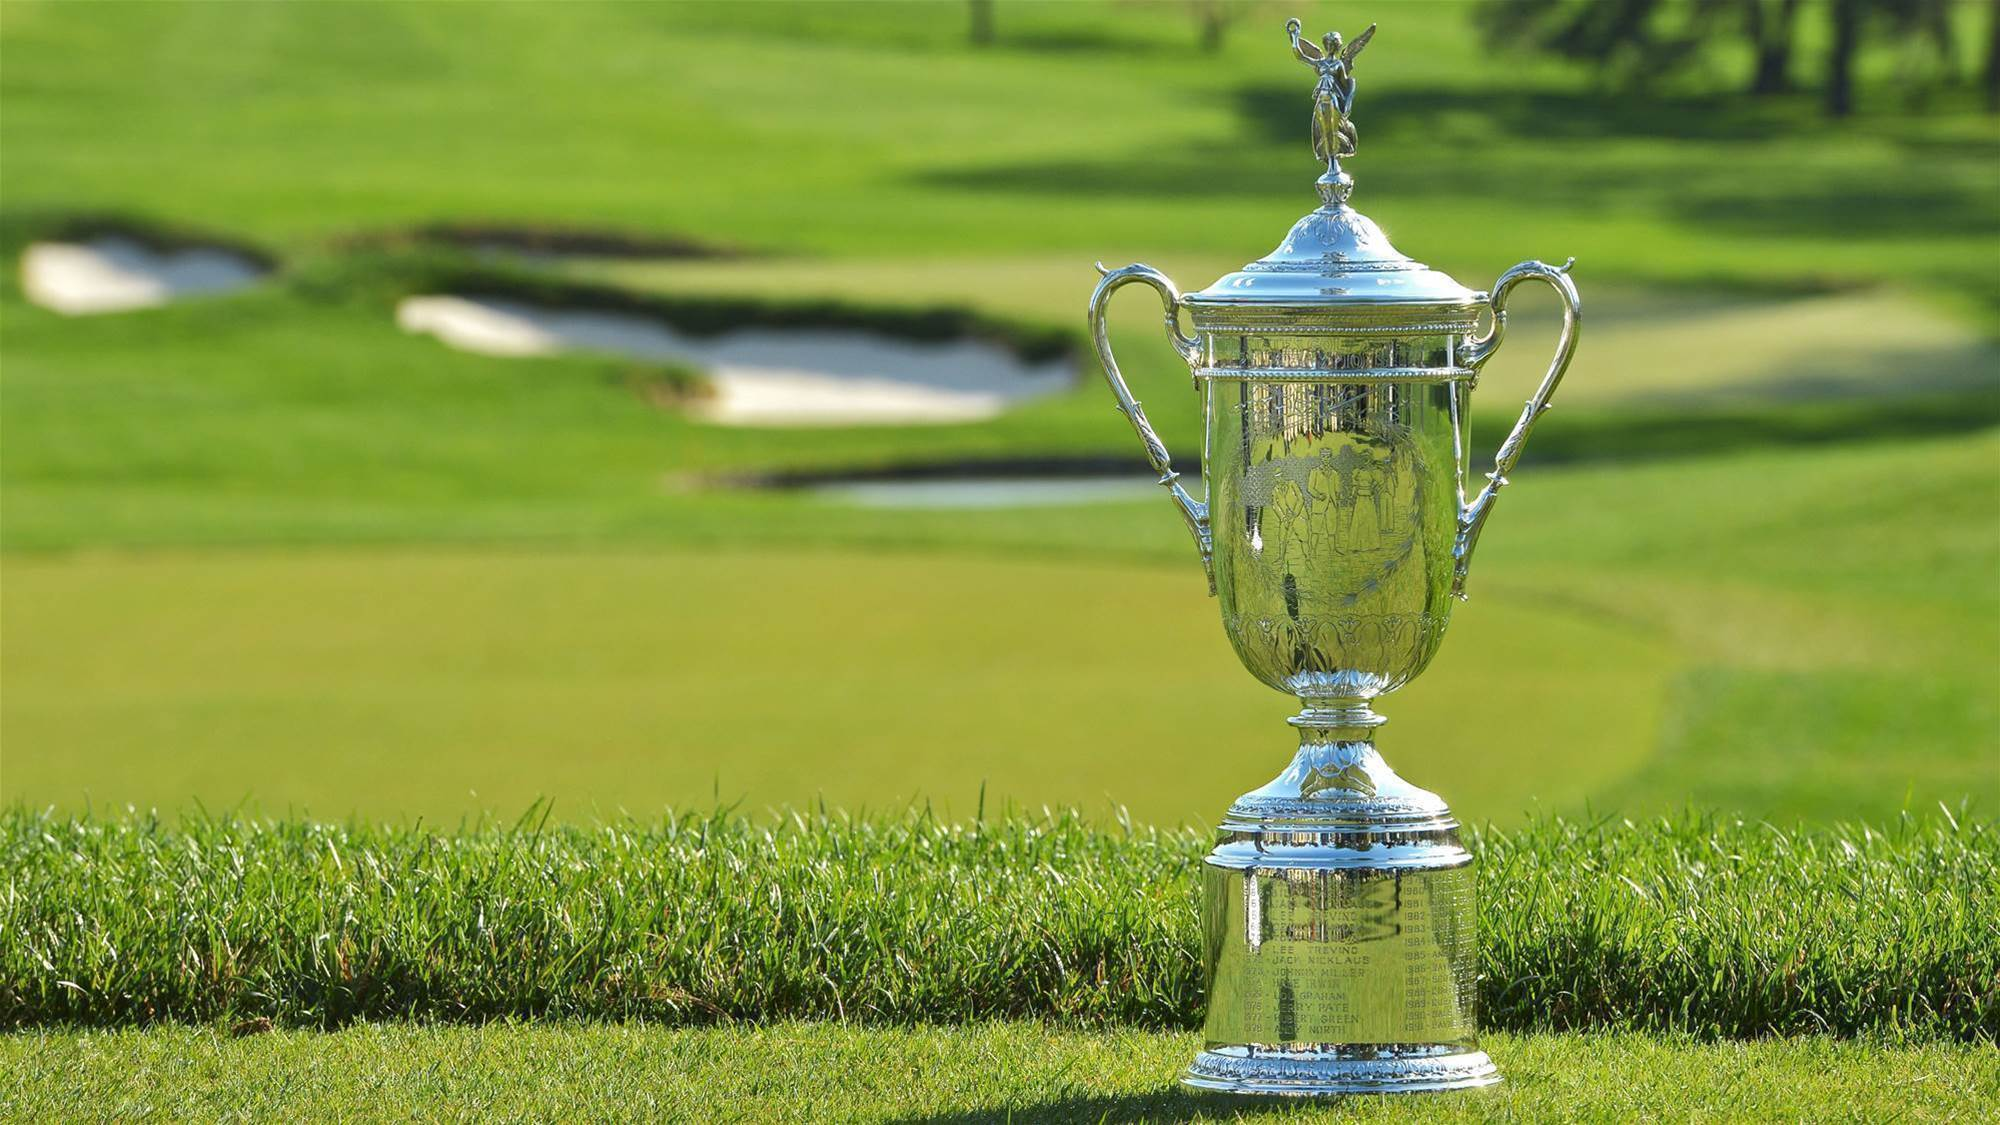 Two-hole play-off in event of US Open tie